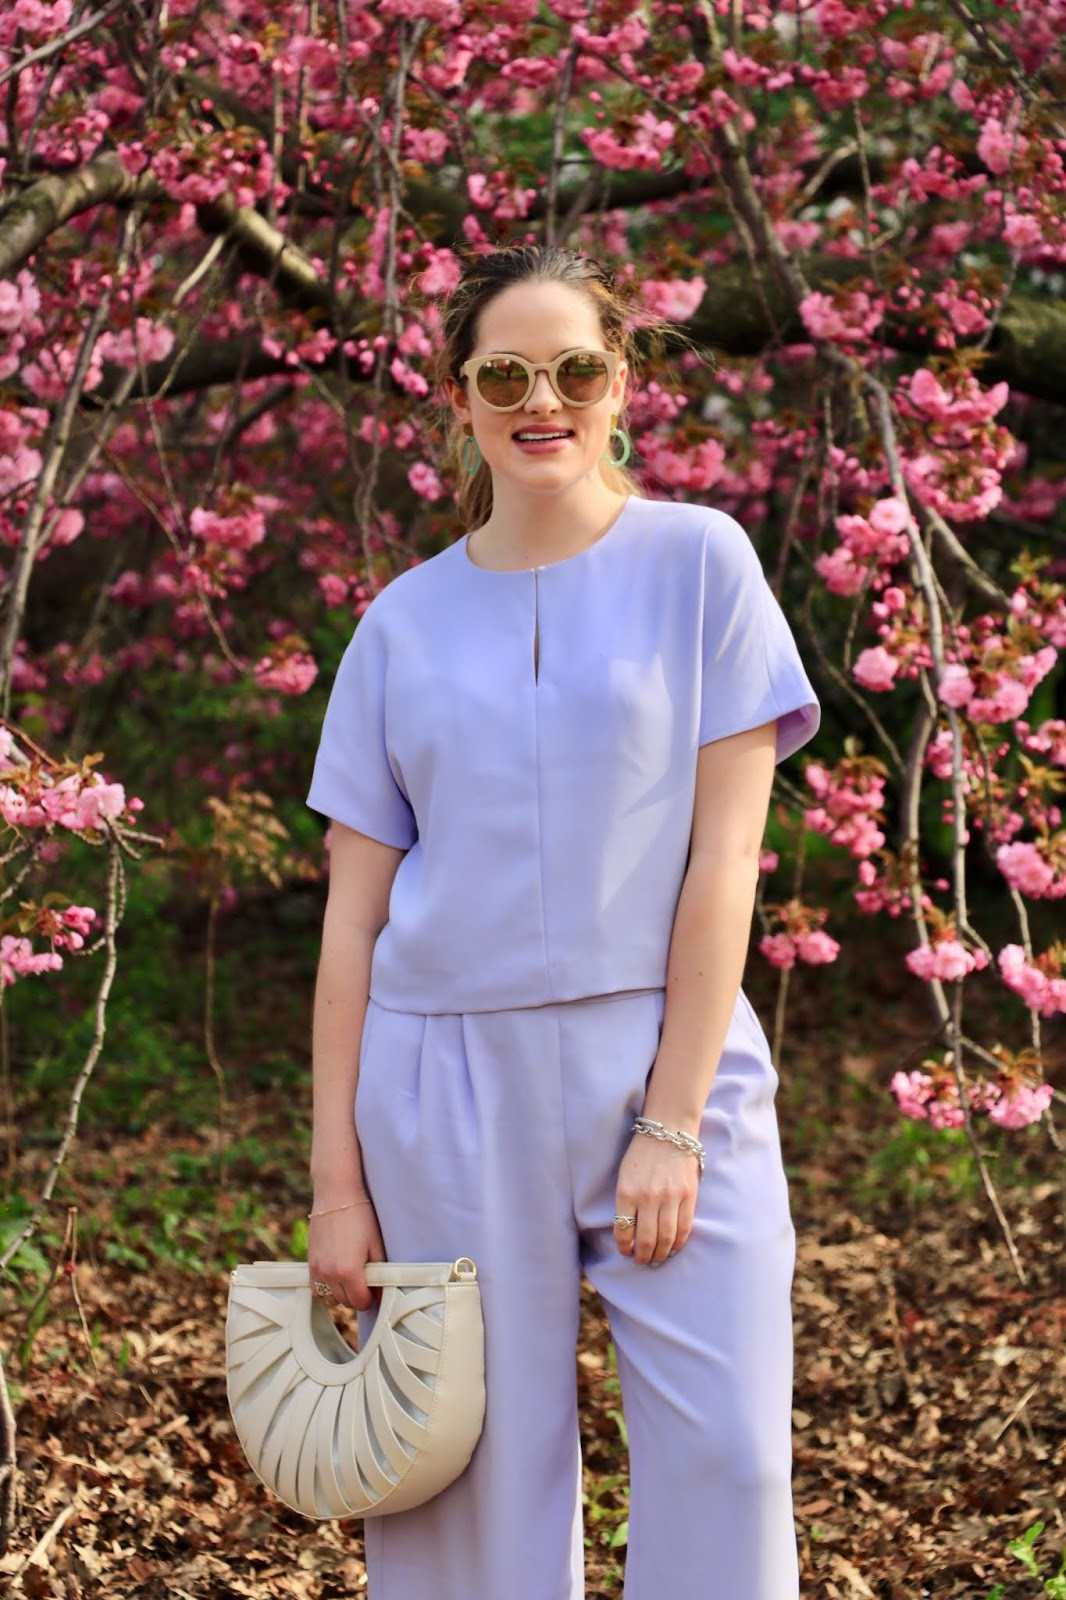 Nyc fashion blogger Kathleen Harper's 2019 cherry blossom pics